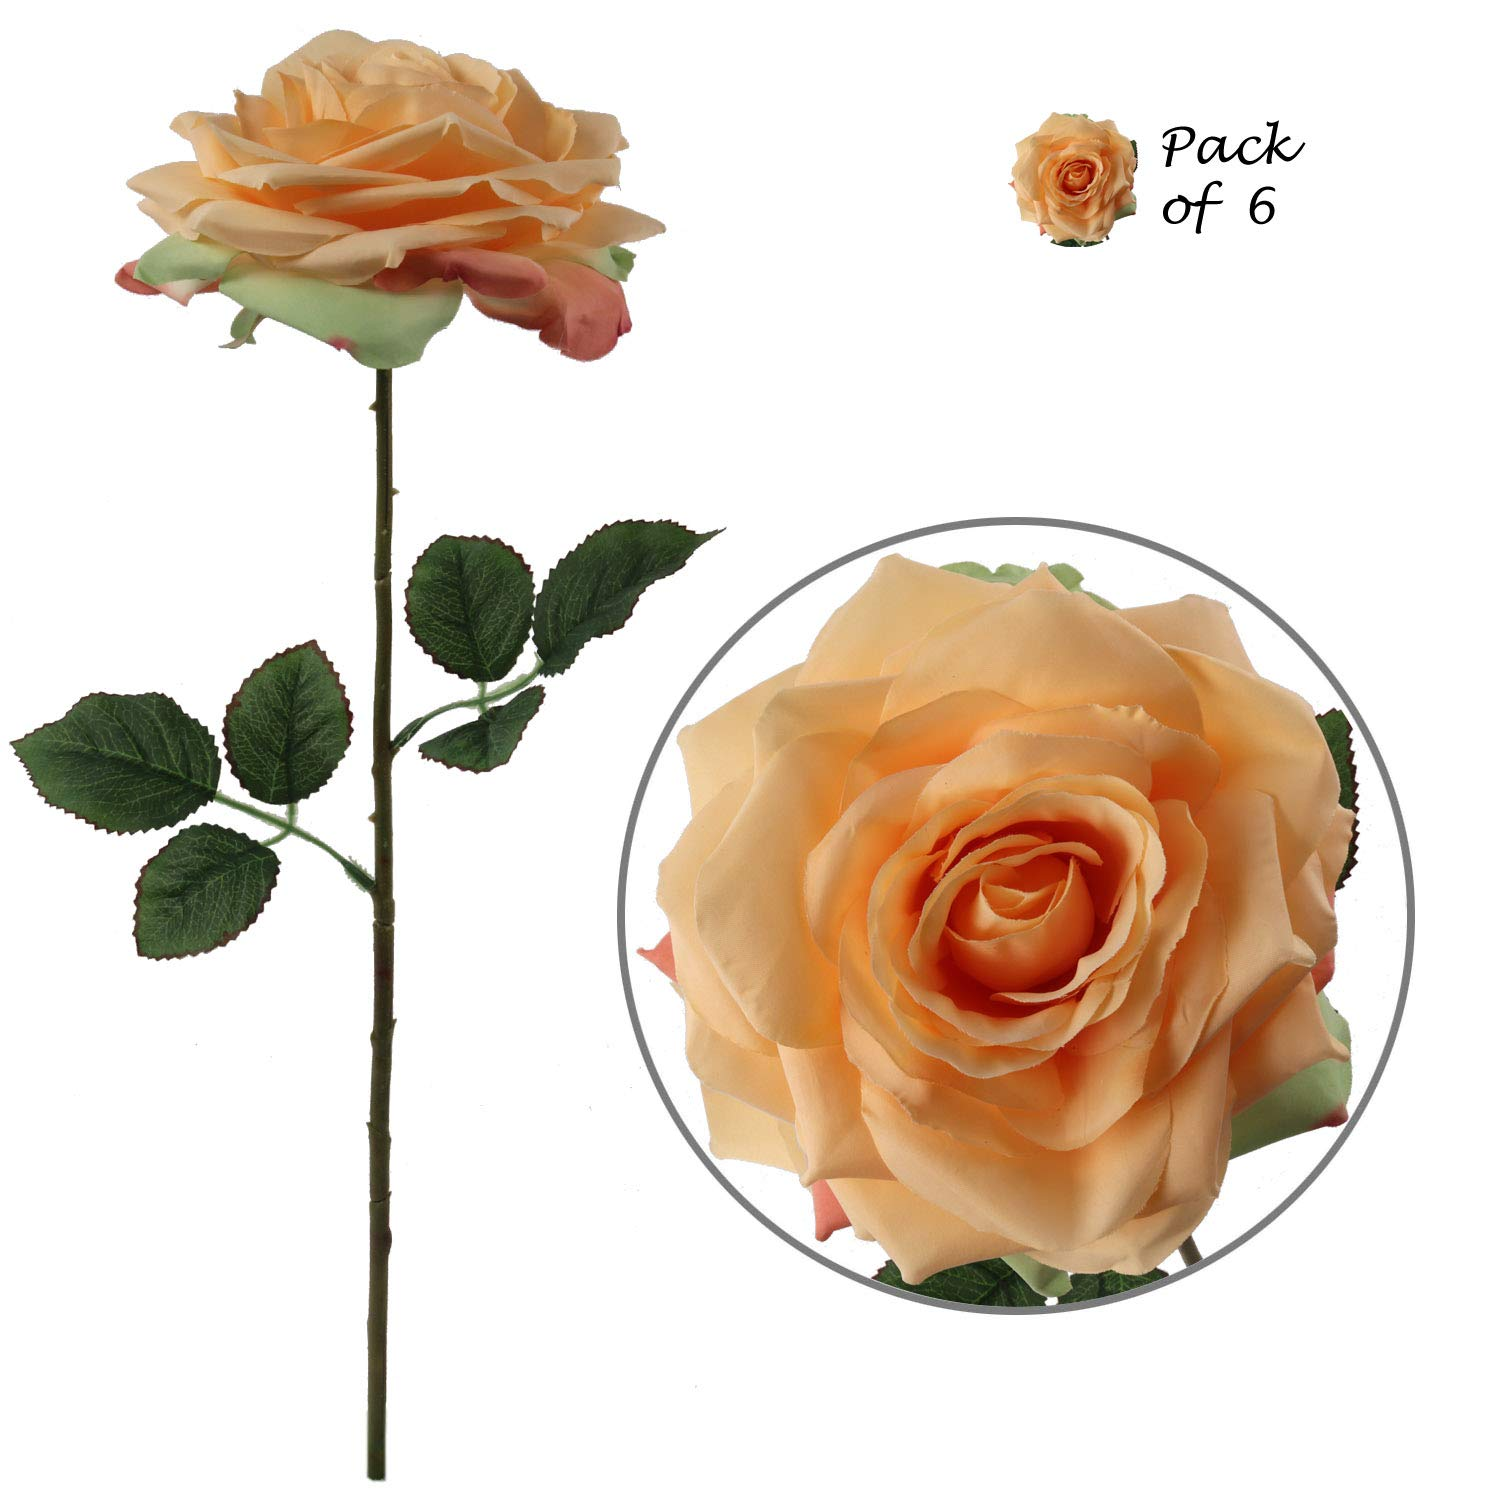 "Larksilk Premium Apricot Silk Artificial Roses for Bridal Bouquet, Wedding or Party Centerpiece Flower Decoration - Six Roses with 20"" Long Stems"